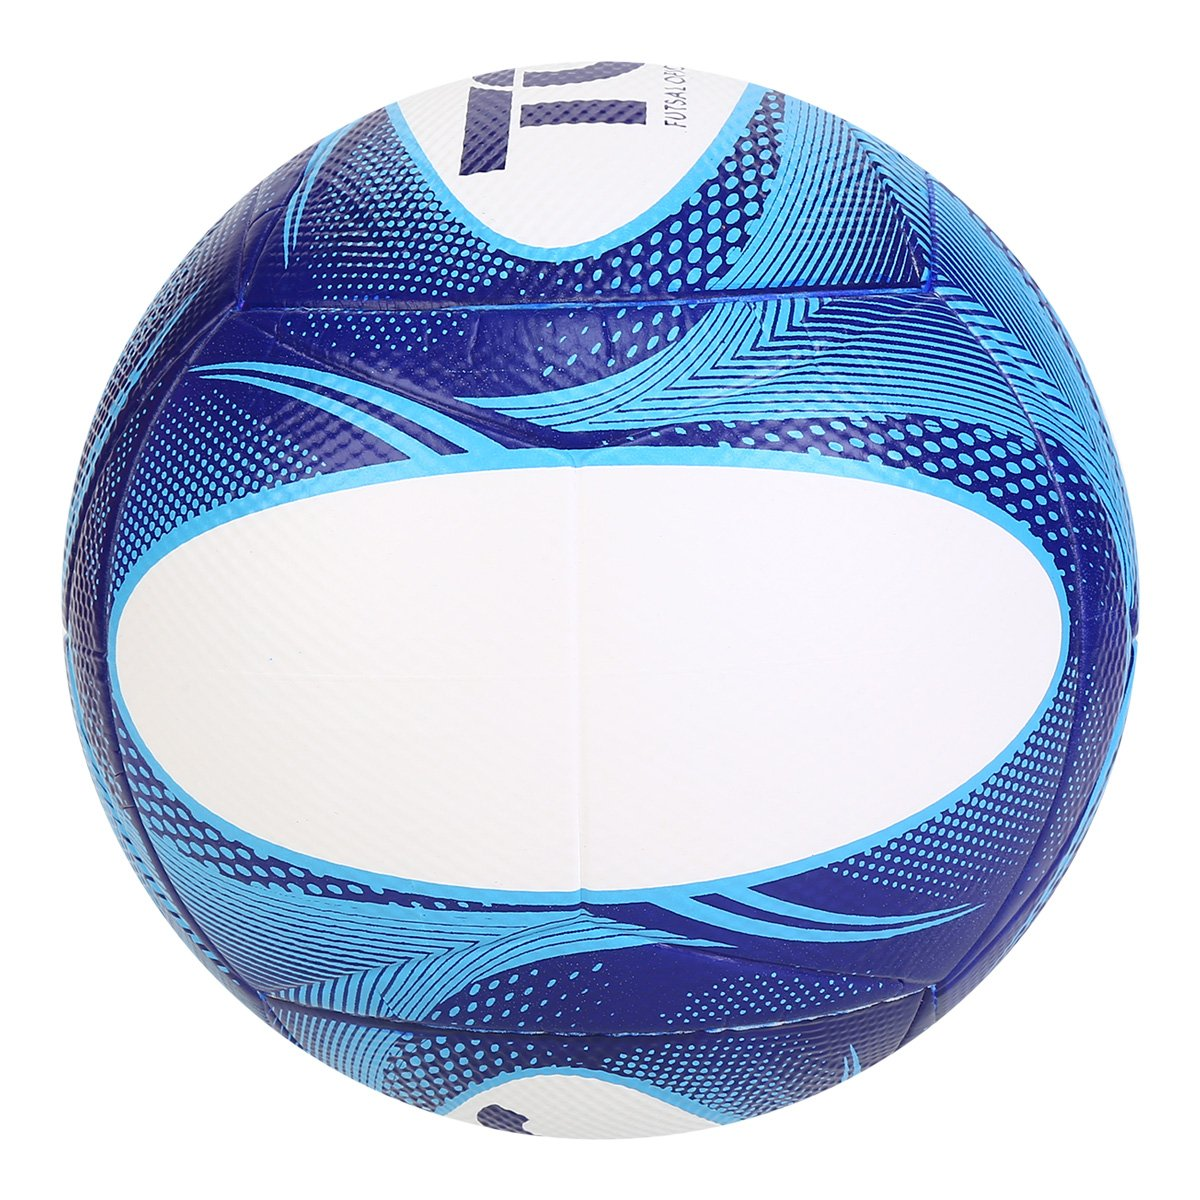 Bola de Futsal Slick II 19 Topper Exclusiva - 2